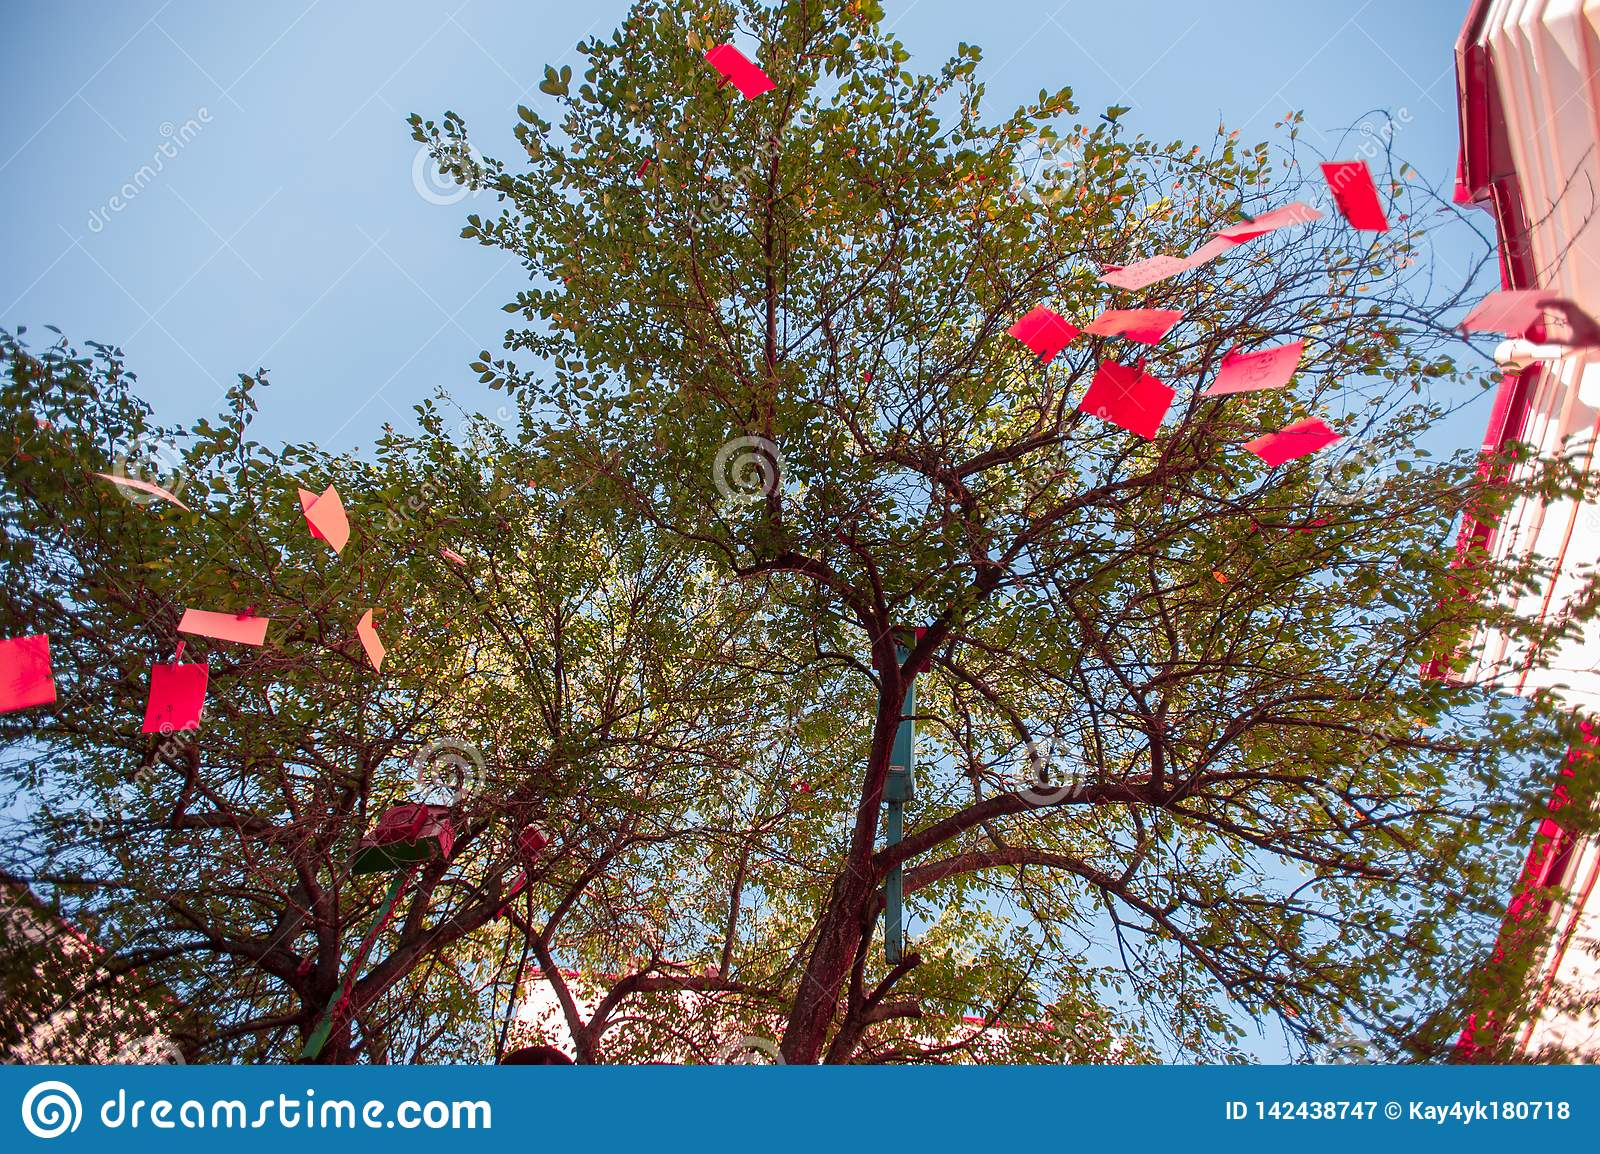 Red notes on a tree, a decorated tree in red